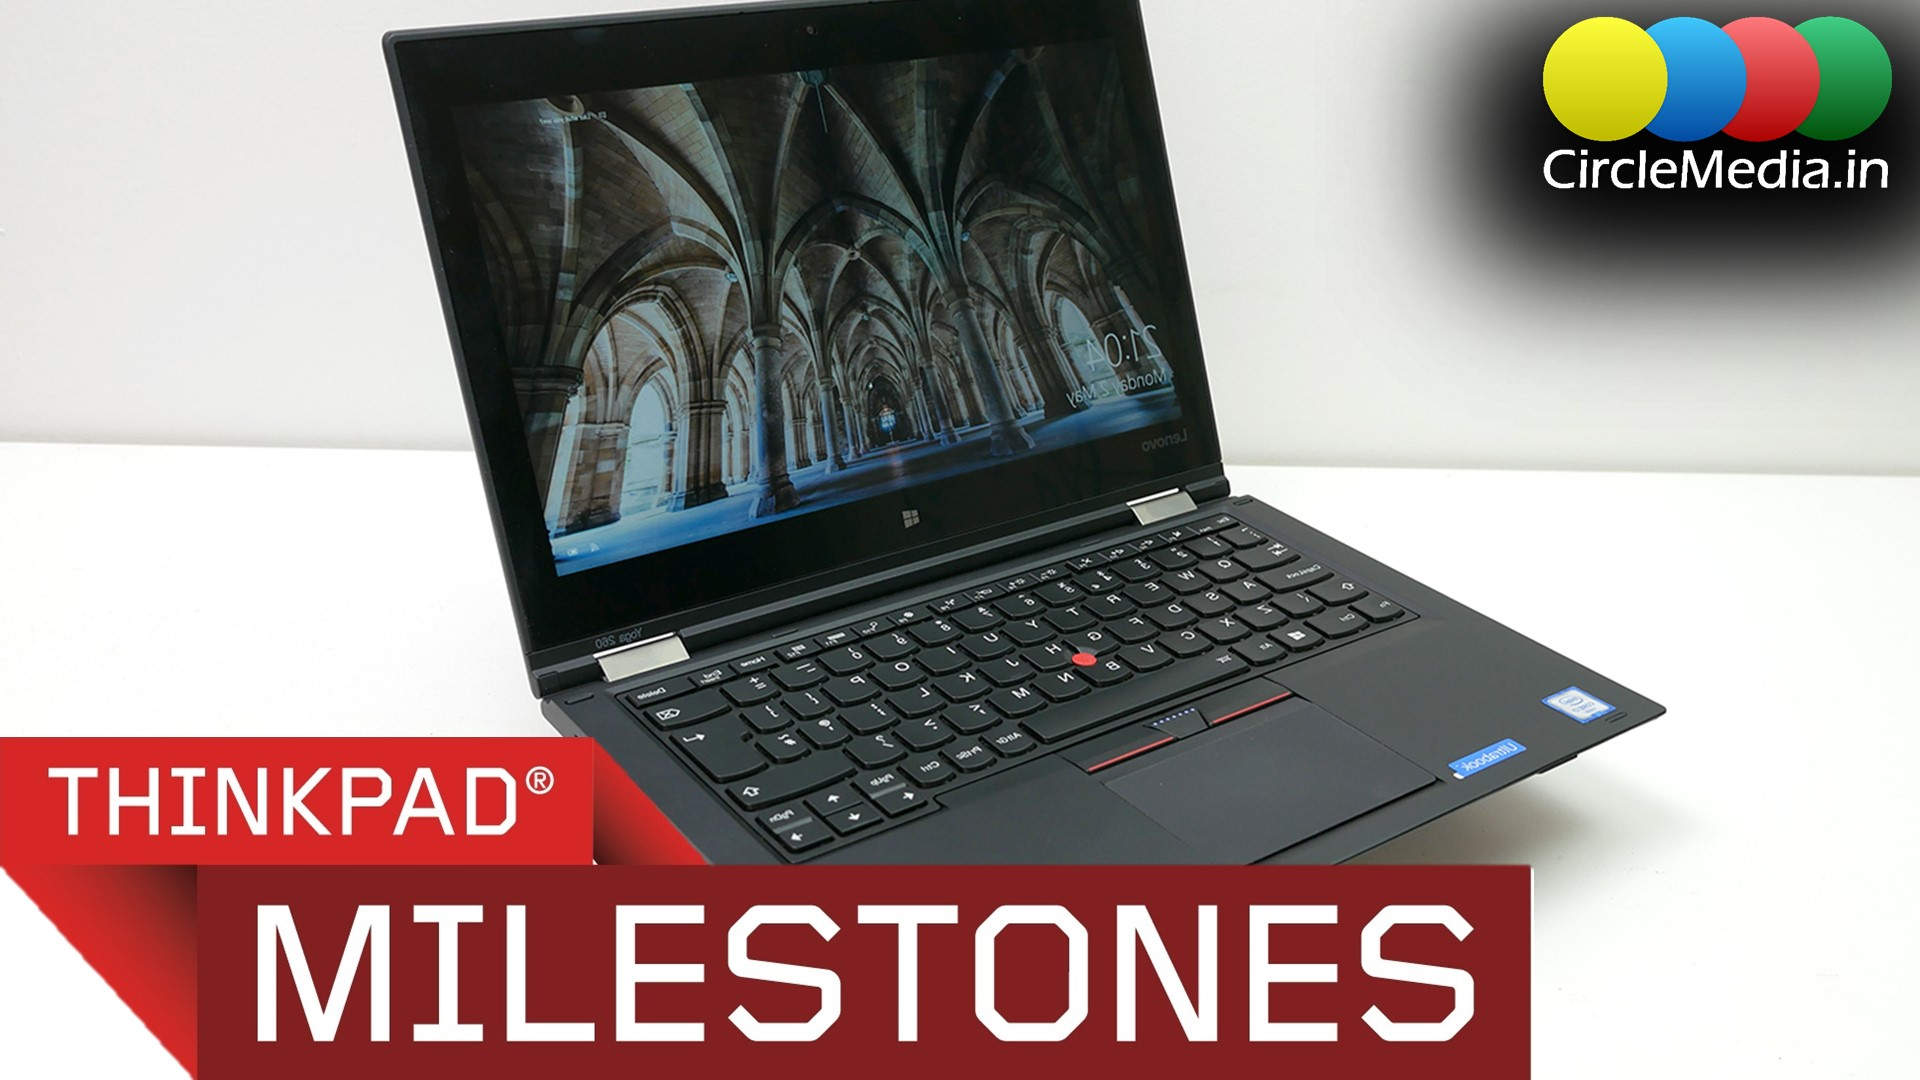 Think Pad Milestones, 20 Years of think pad Innovation, lenovo Thinkpad Review